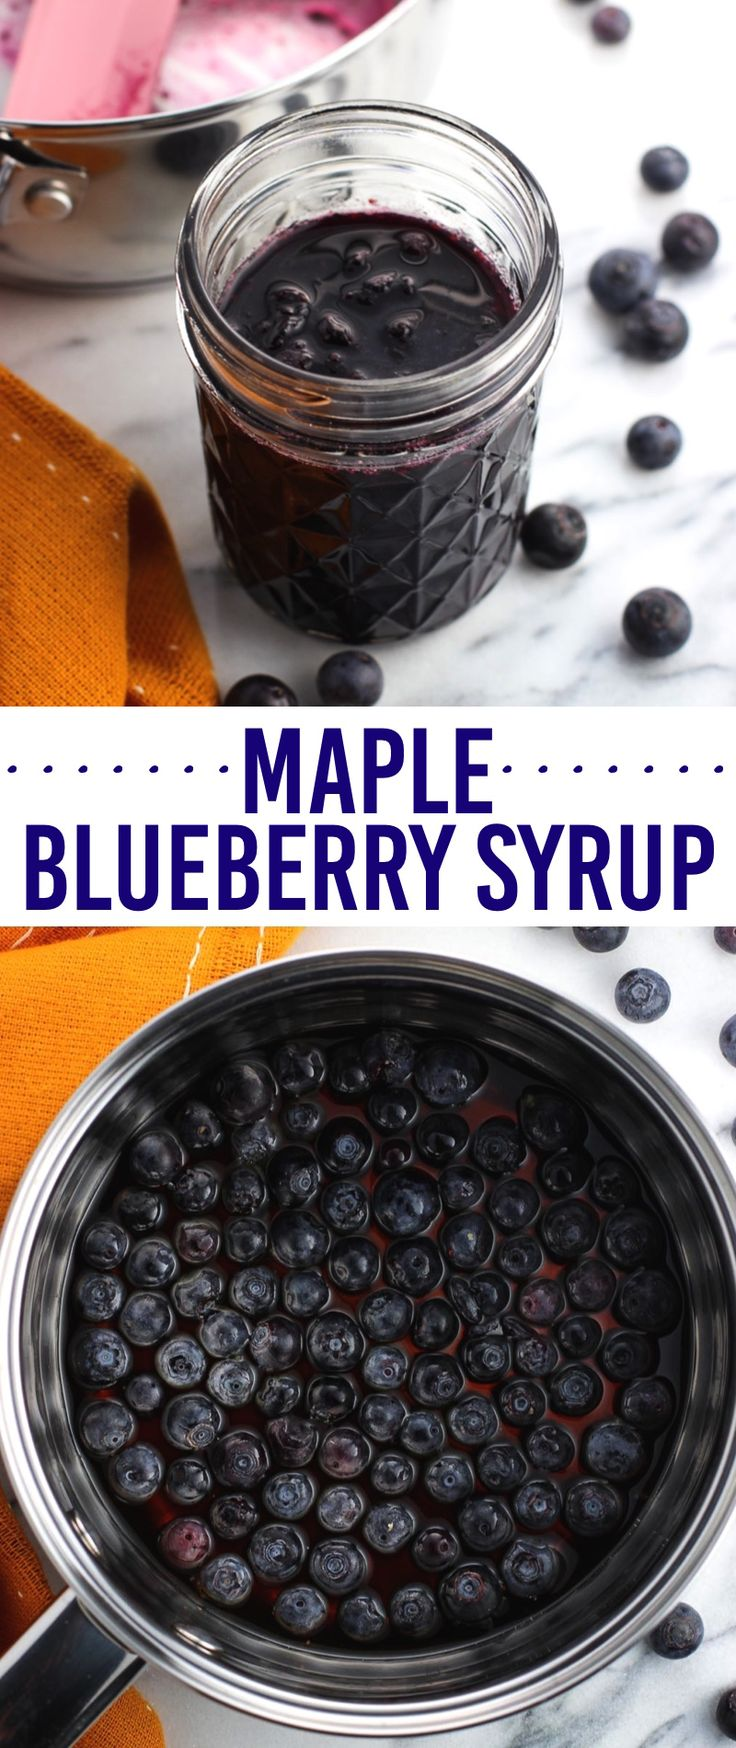 Maple blueberry syrup is an incredibly simple, three-ingredient syrup recipe that revamps breakfast or brunch. Perfect for pancakes, waffles, and more.